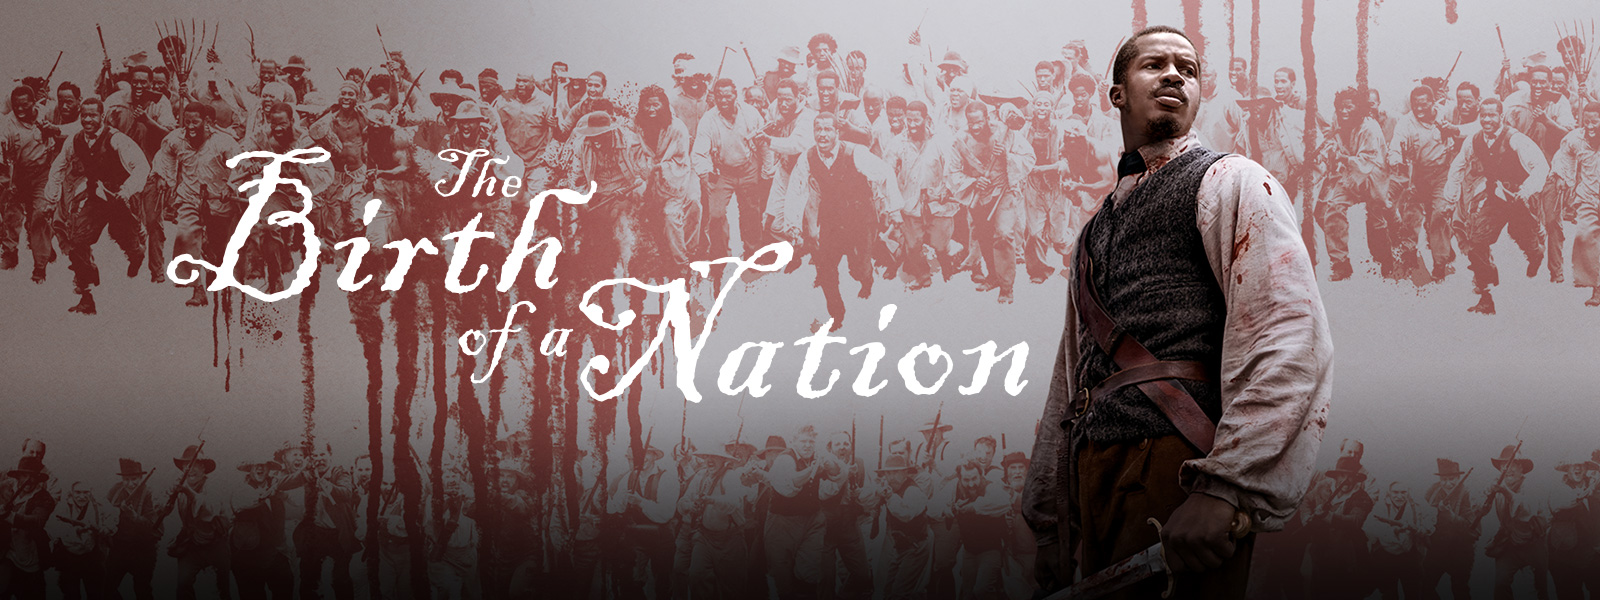 Birth of a Nation marquee titelpagina